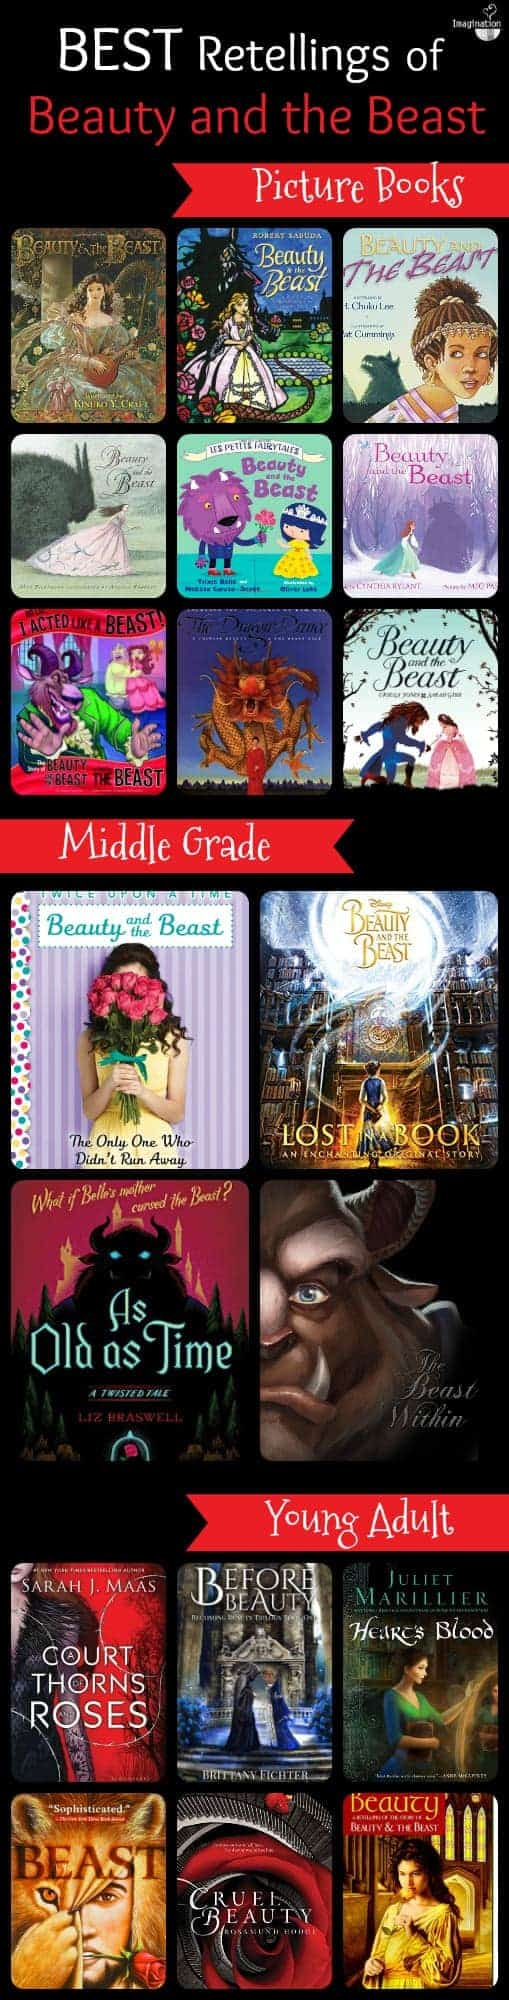 best retellings and adaptations of Beauty and the Beast for kids and YA